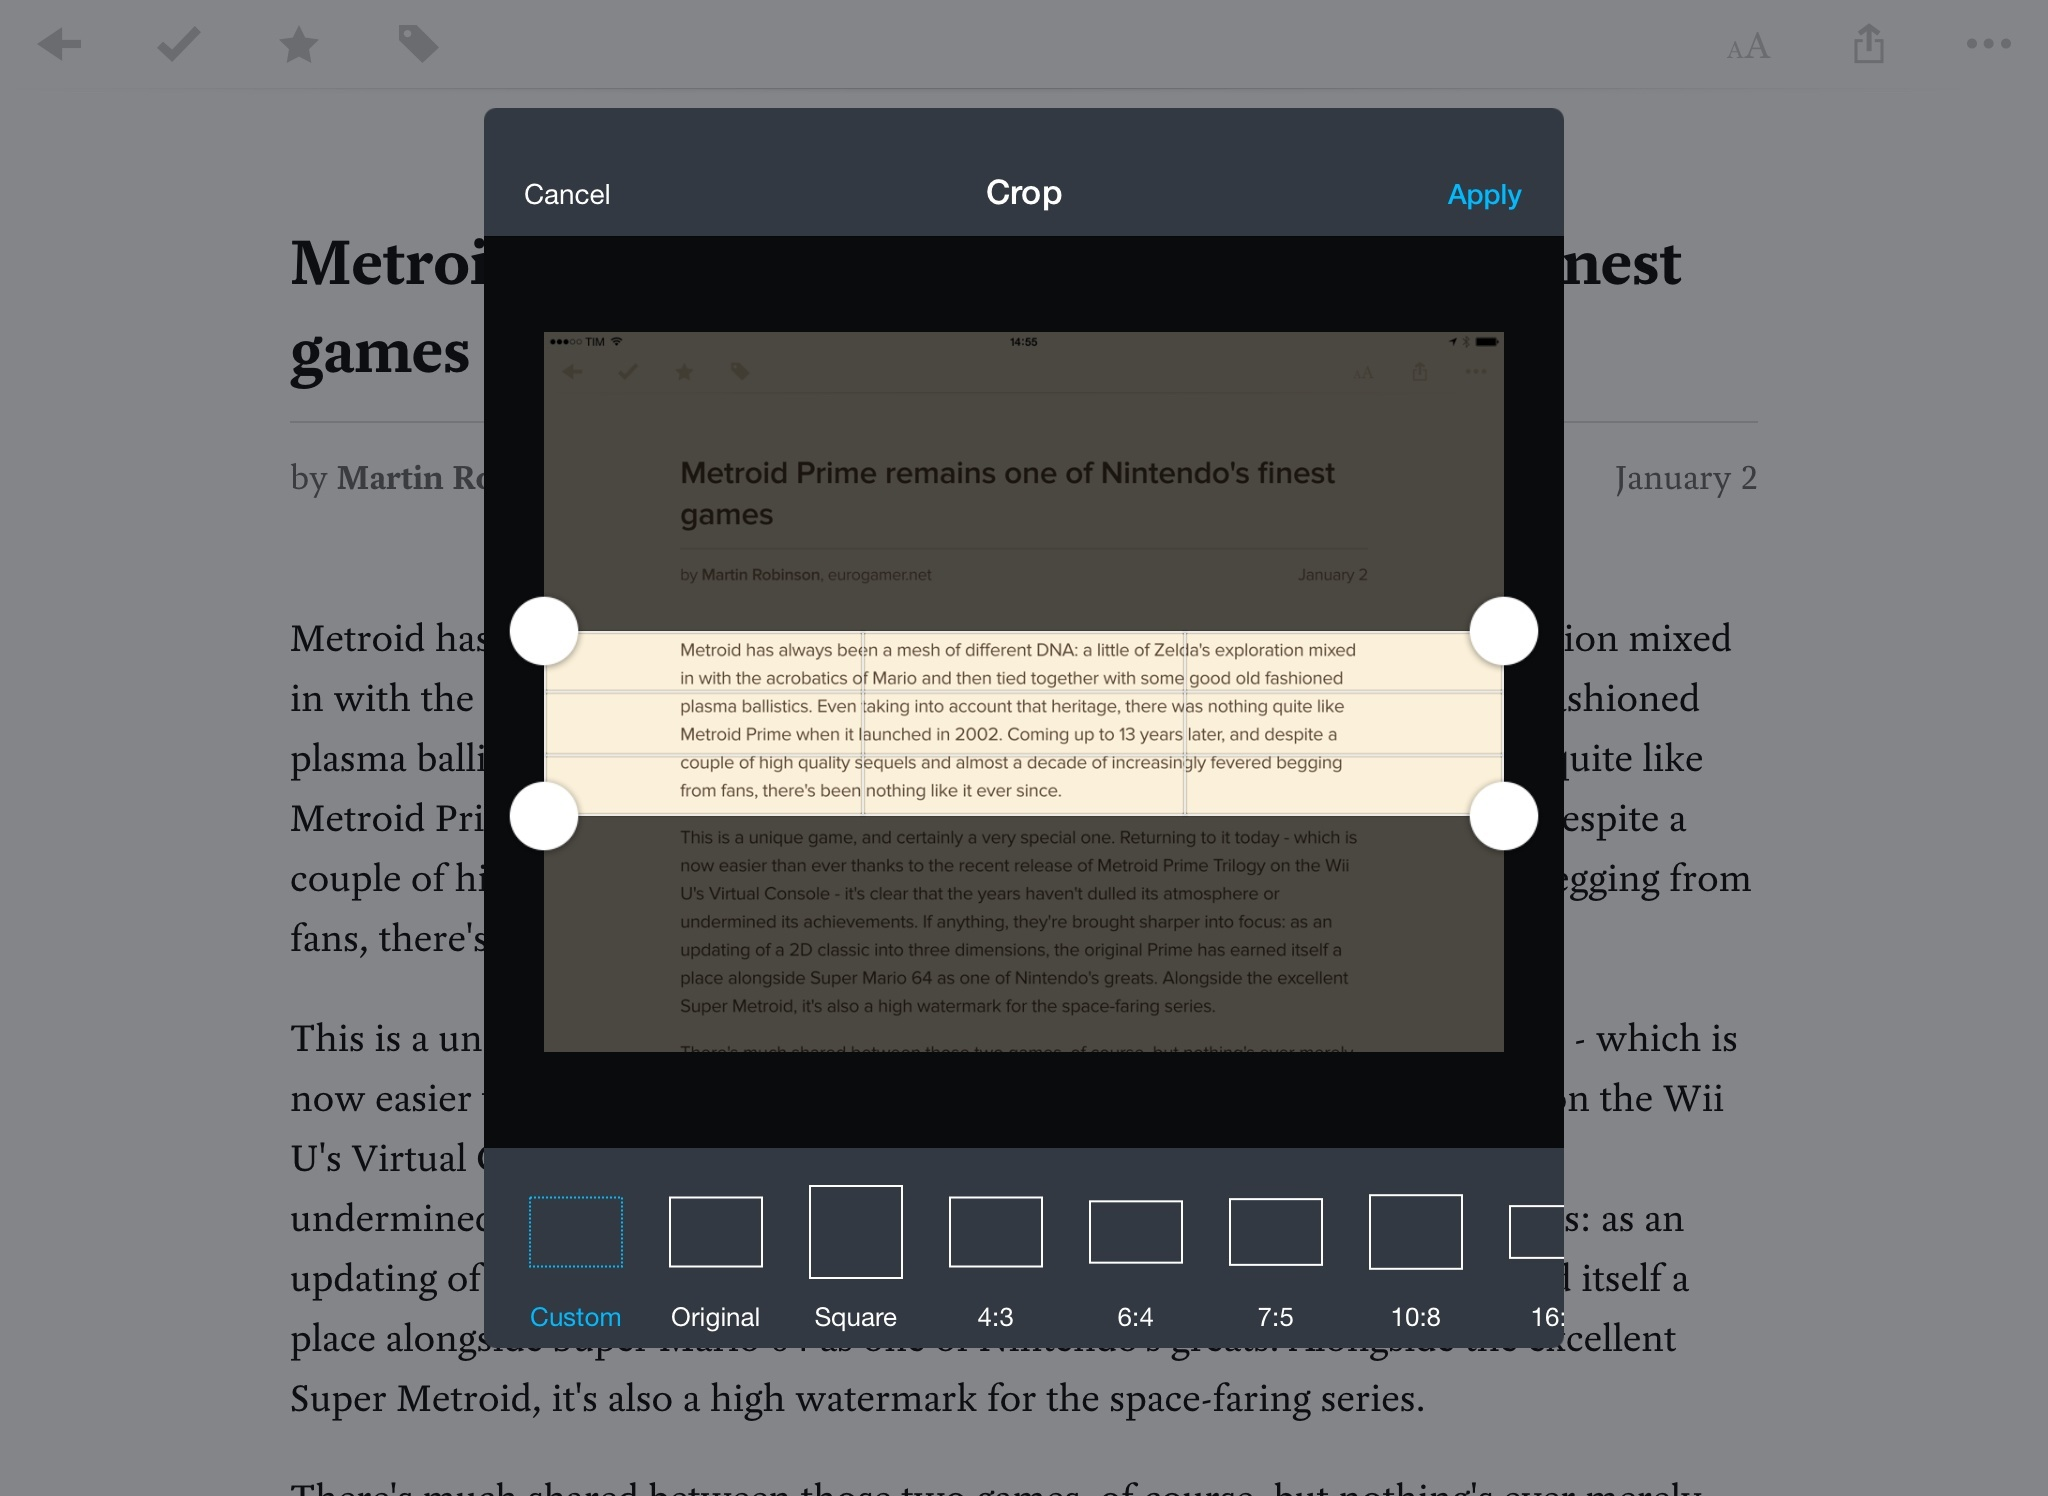 Cropping a textshot in Pocket with Workflow.